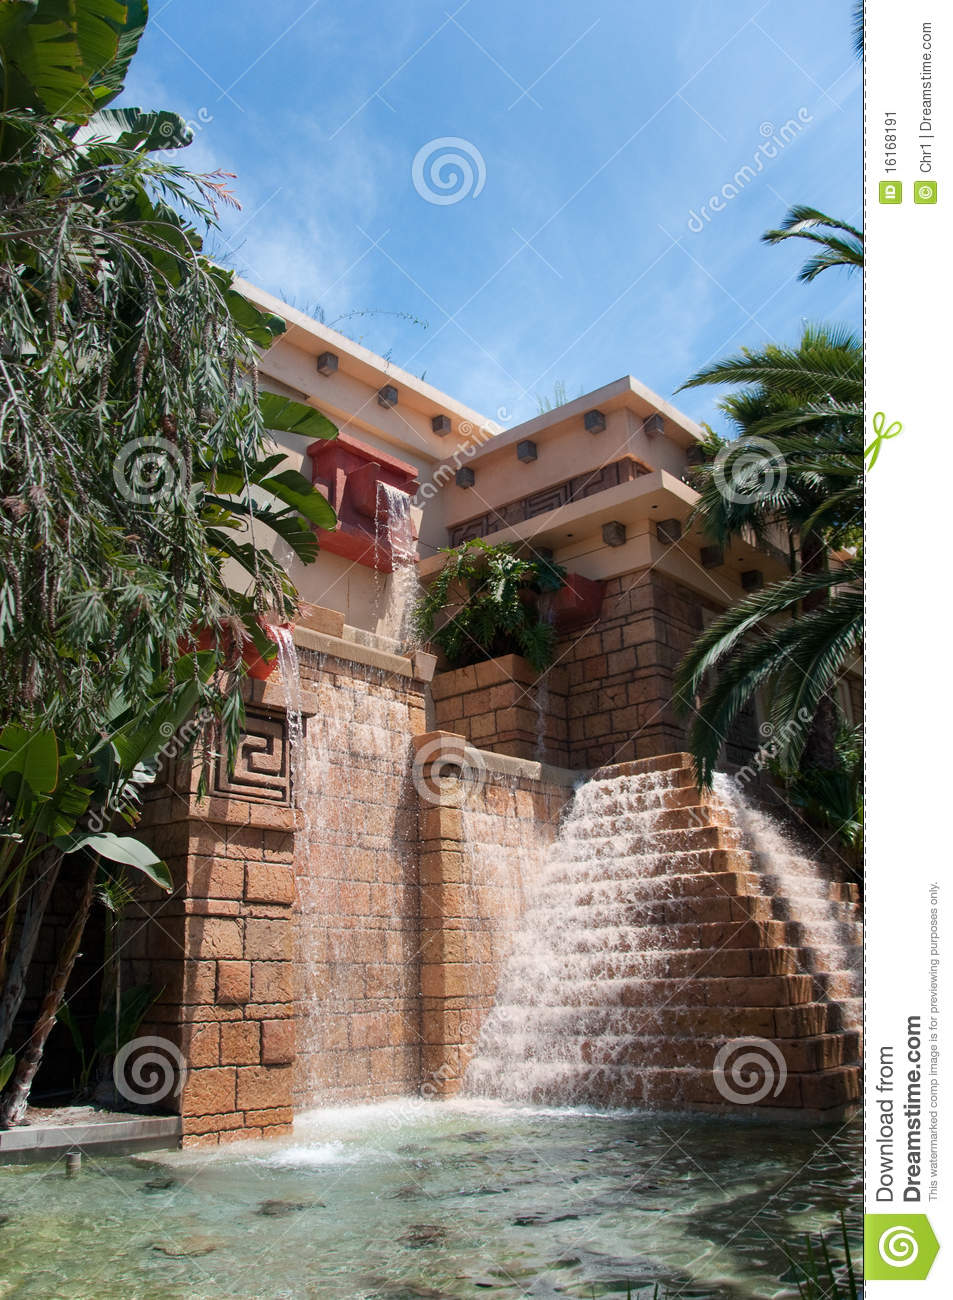 Aztec Fountain Stock Image Image Of Itza Grass Site